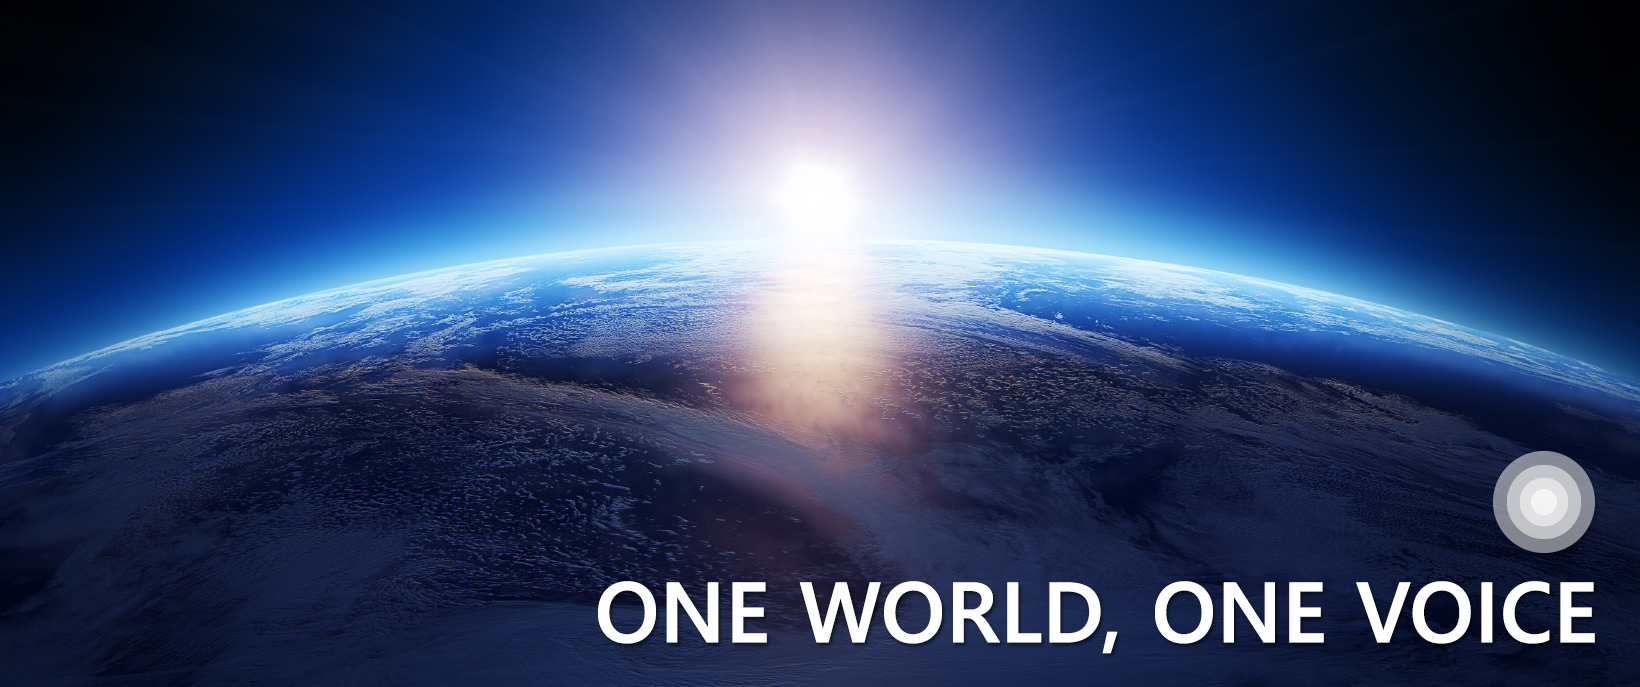 One World one voice